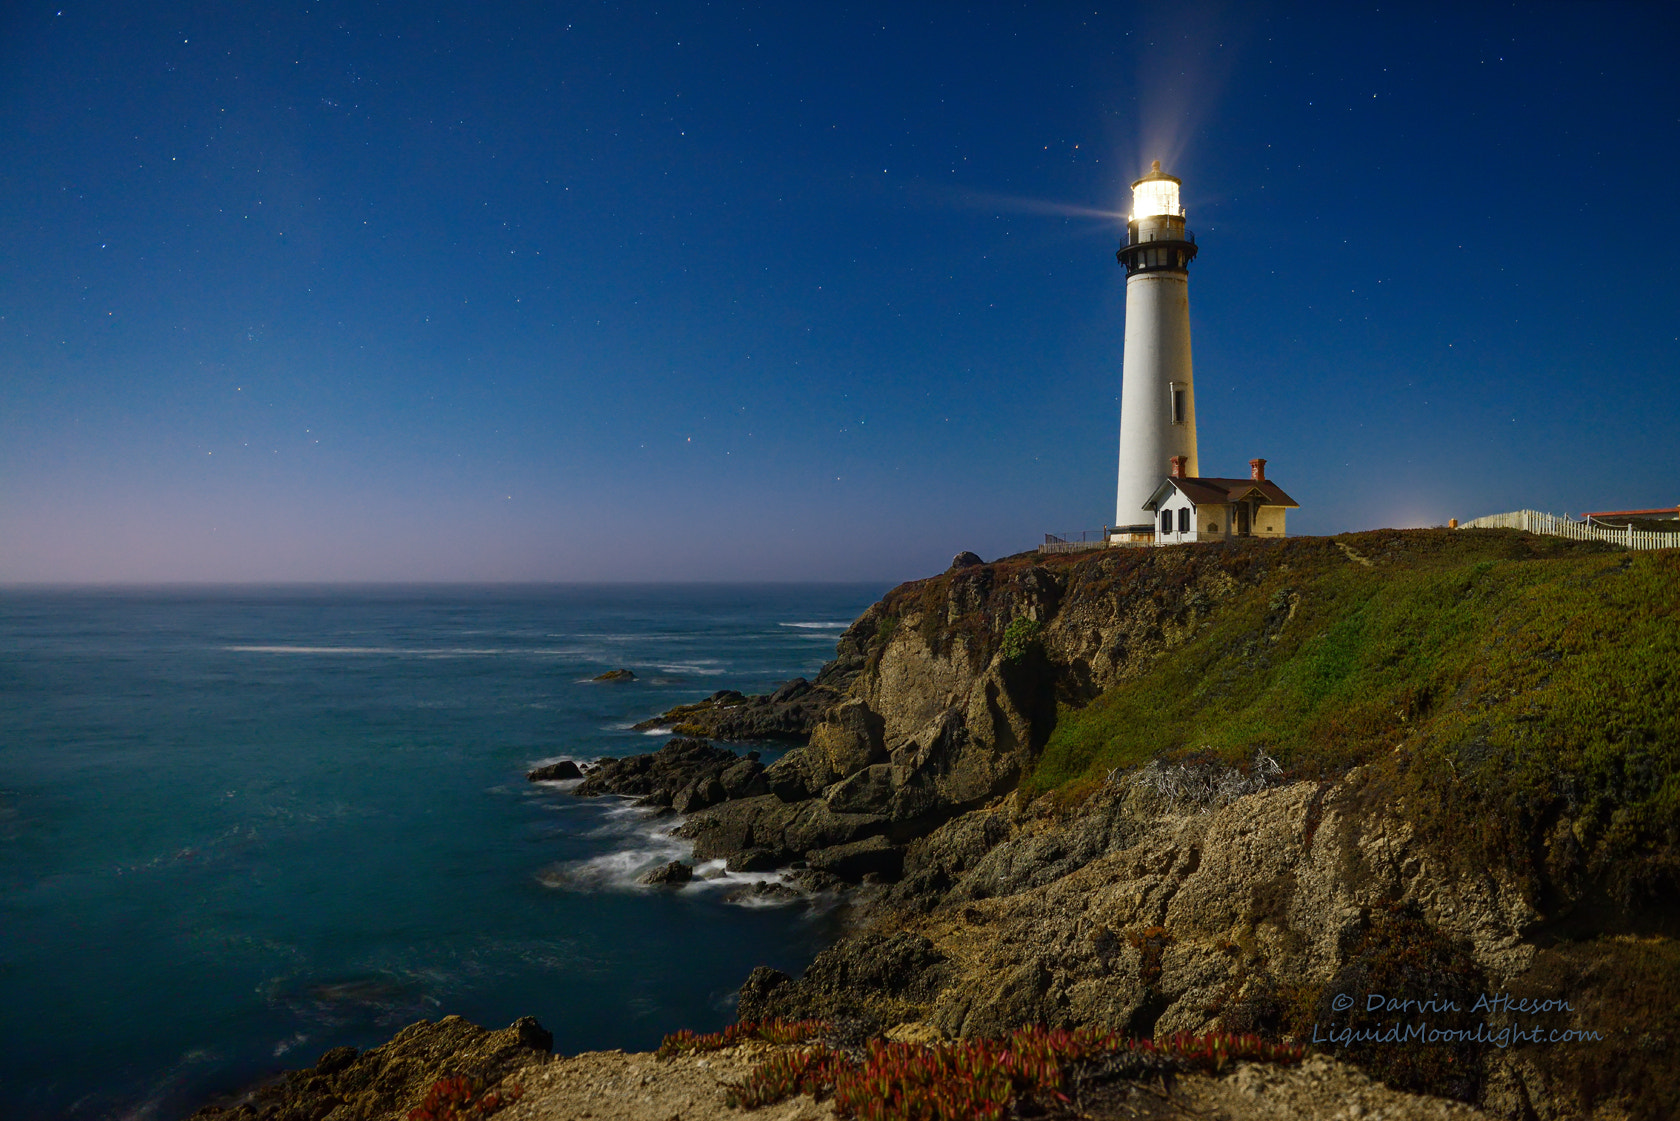 Photograph Crystal Clear - Pigeon Point Lighthouse  by Darvin Atkeson on 500px